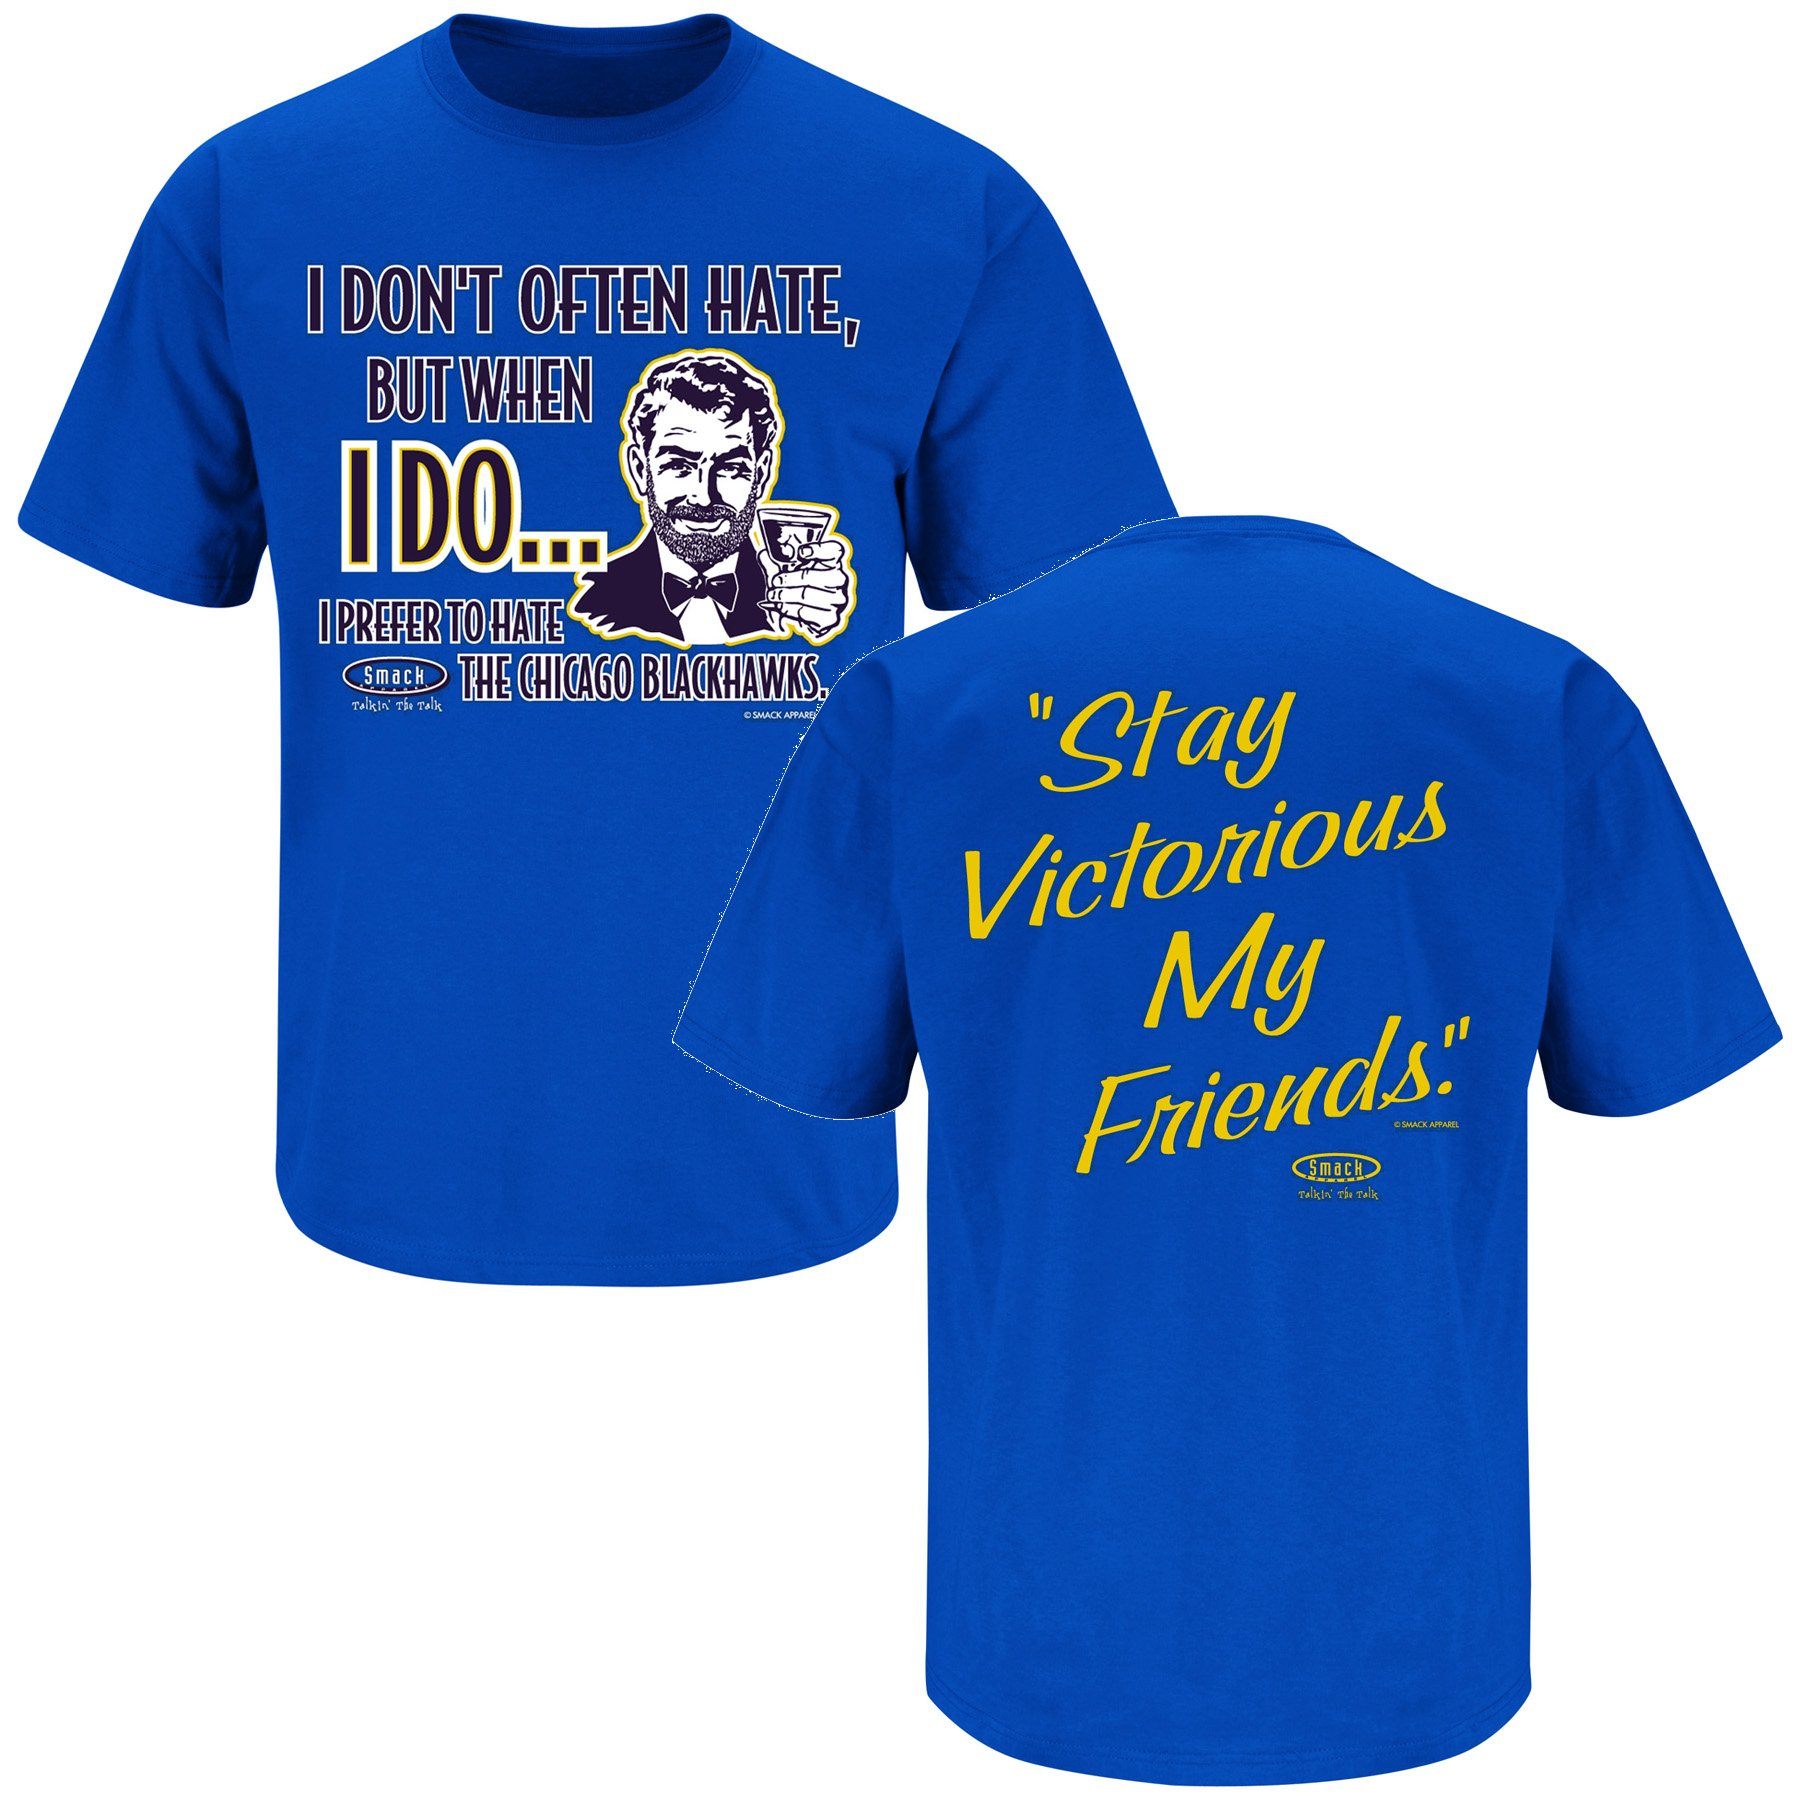 Smack Apparel St. Louis Hockey Fans. Stay Victorious (Anti-Chicago) I Don't Often Hate Blue T-Shirt (S-5X)